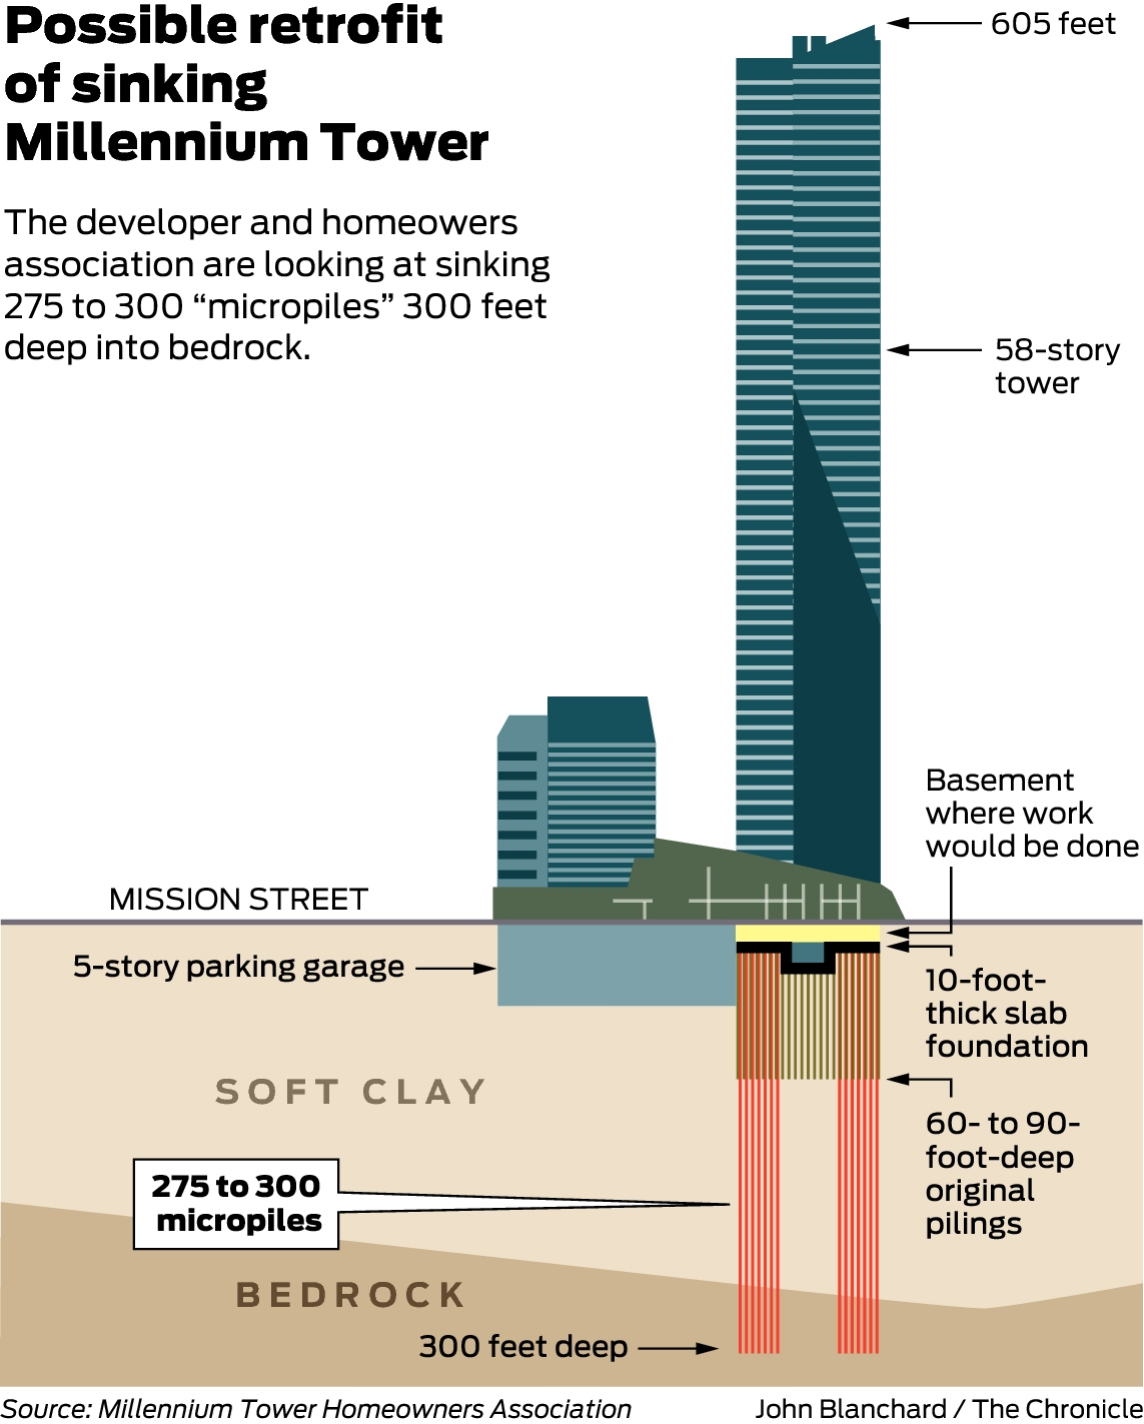 Pricey retrofit proposed for sinking Millennium Tower in SF